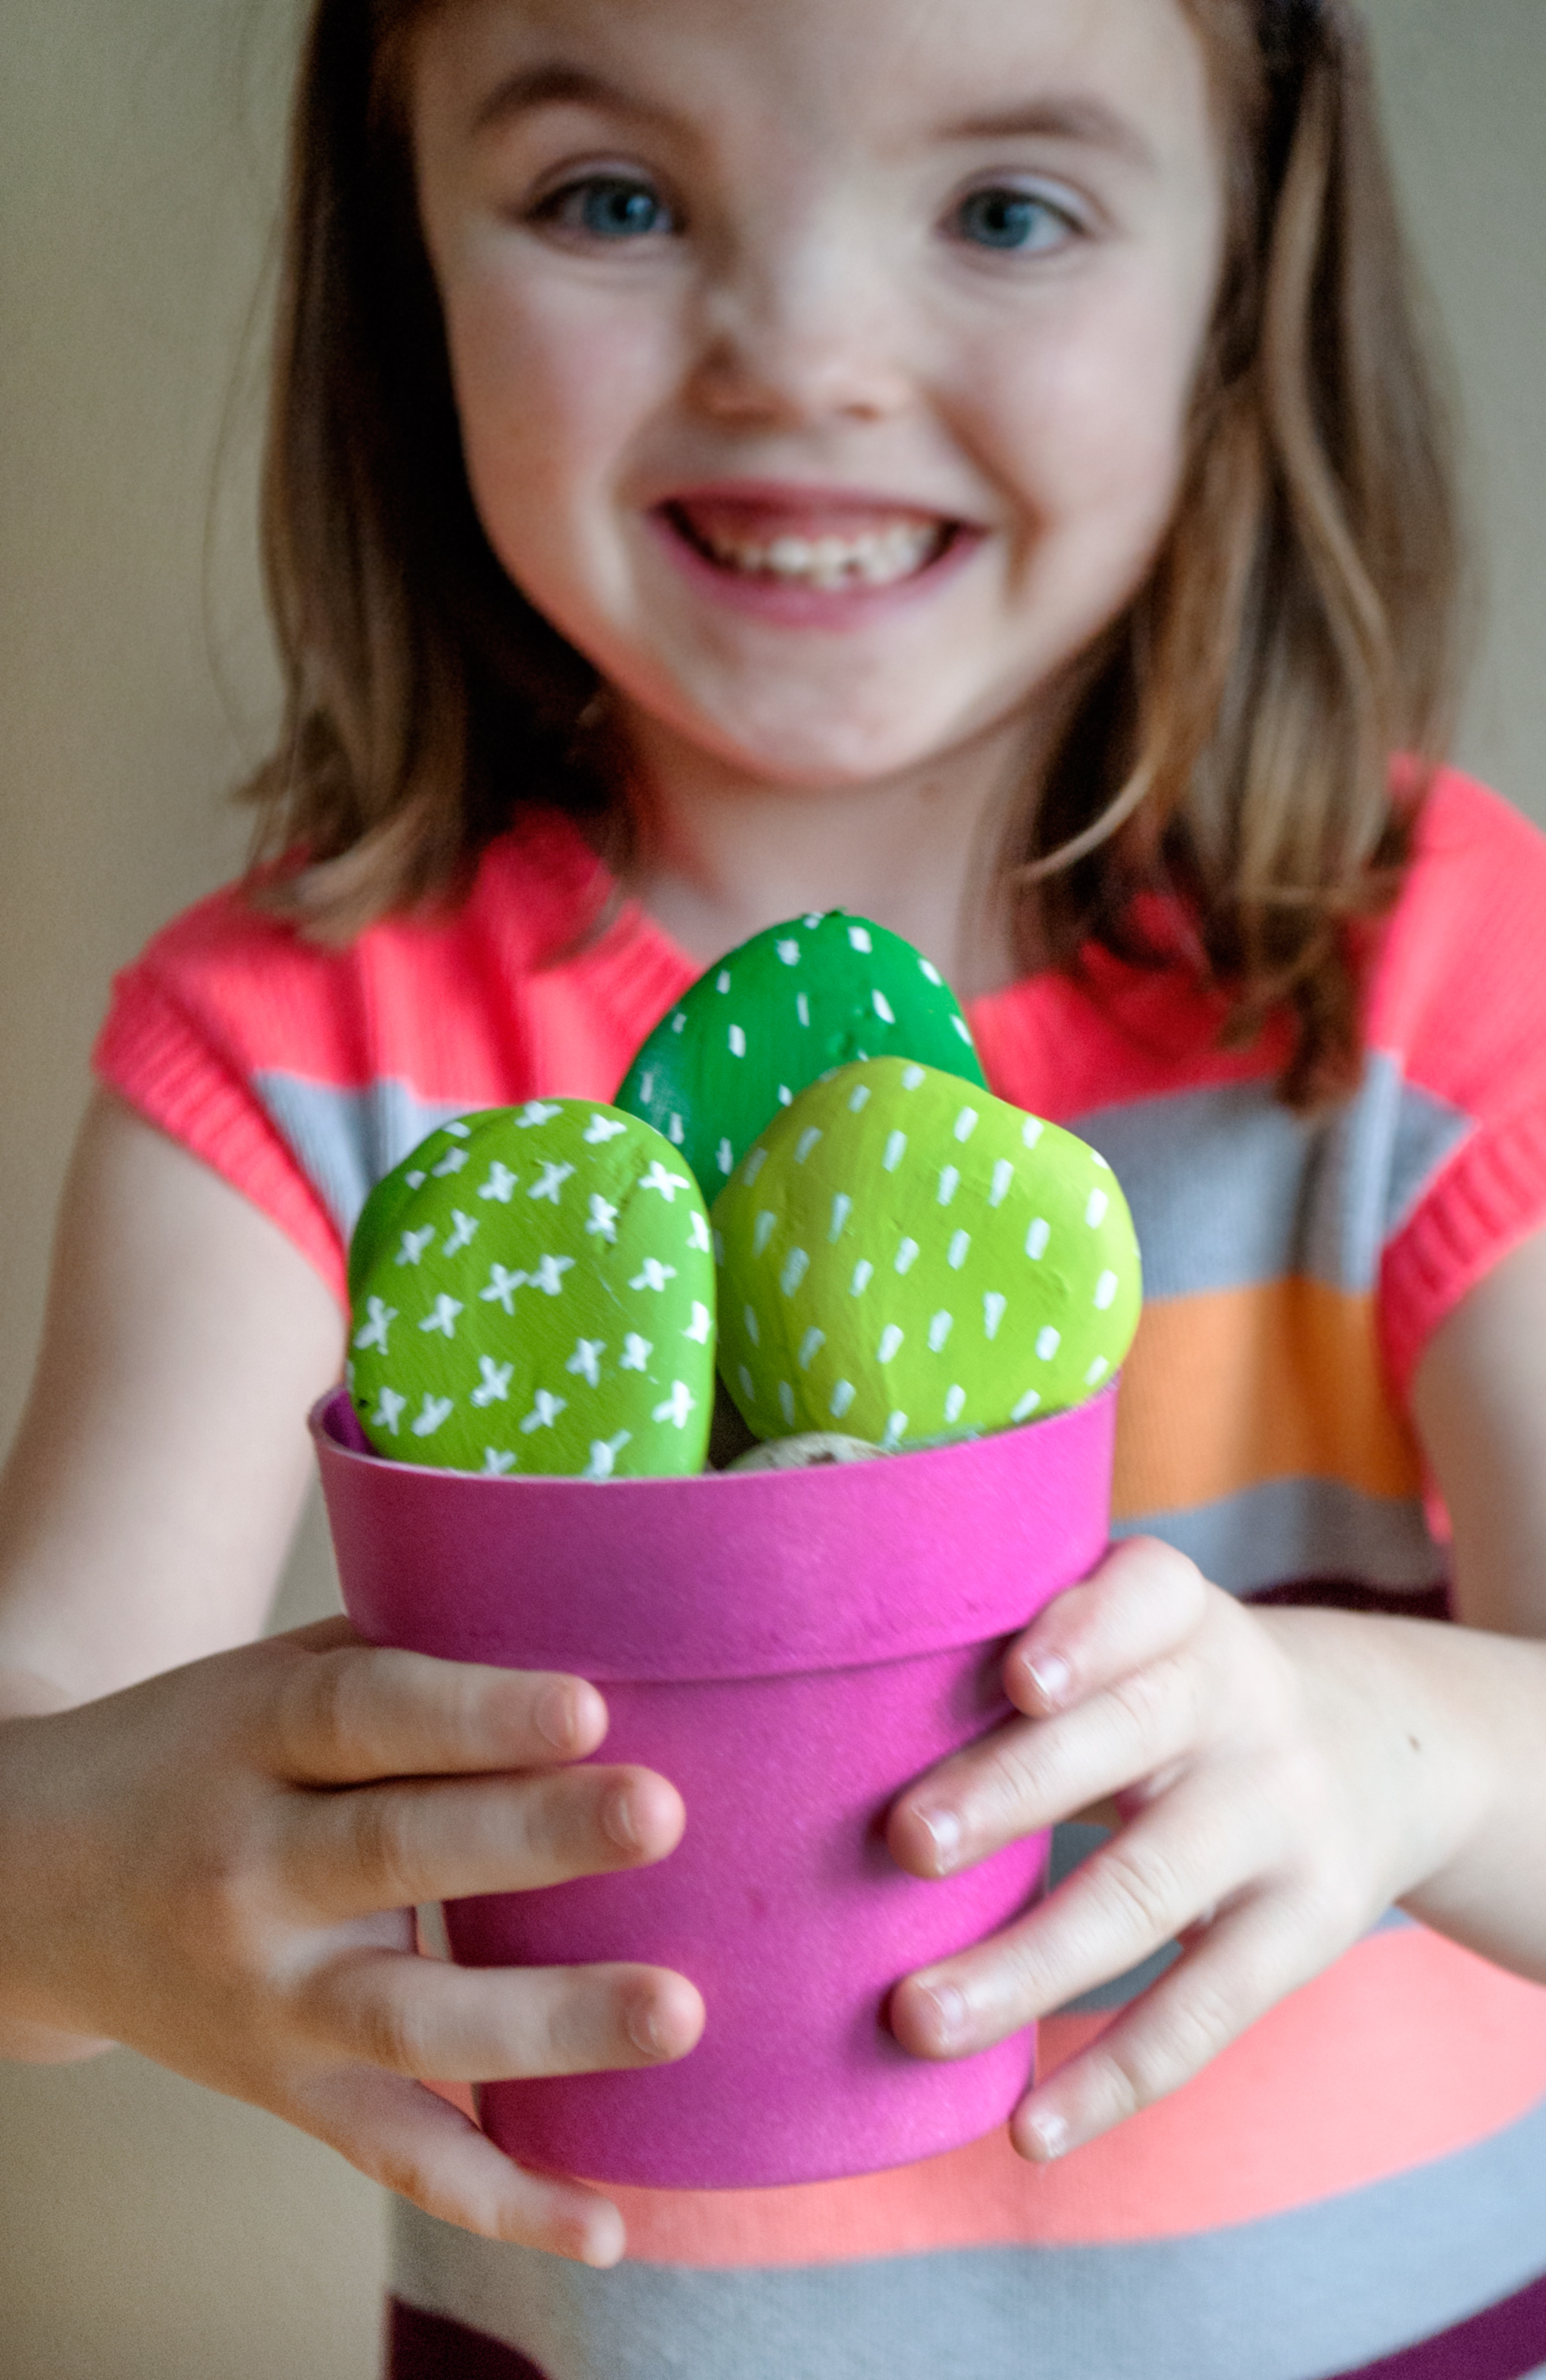 DIY Cactus Rocks Make Your Own Cactus Rock Garden Craft for Kids